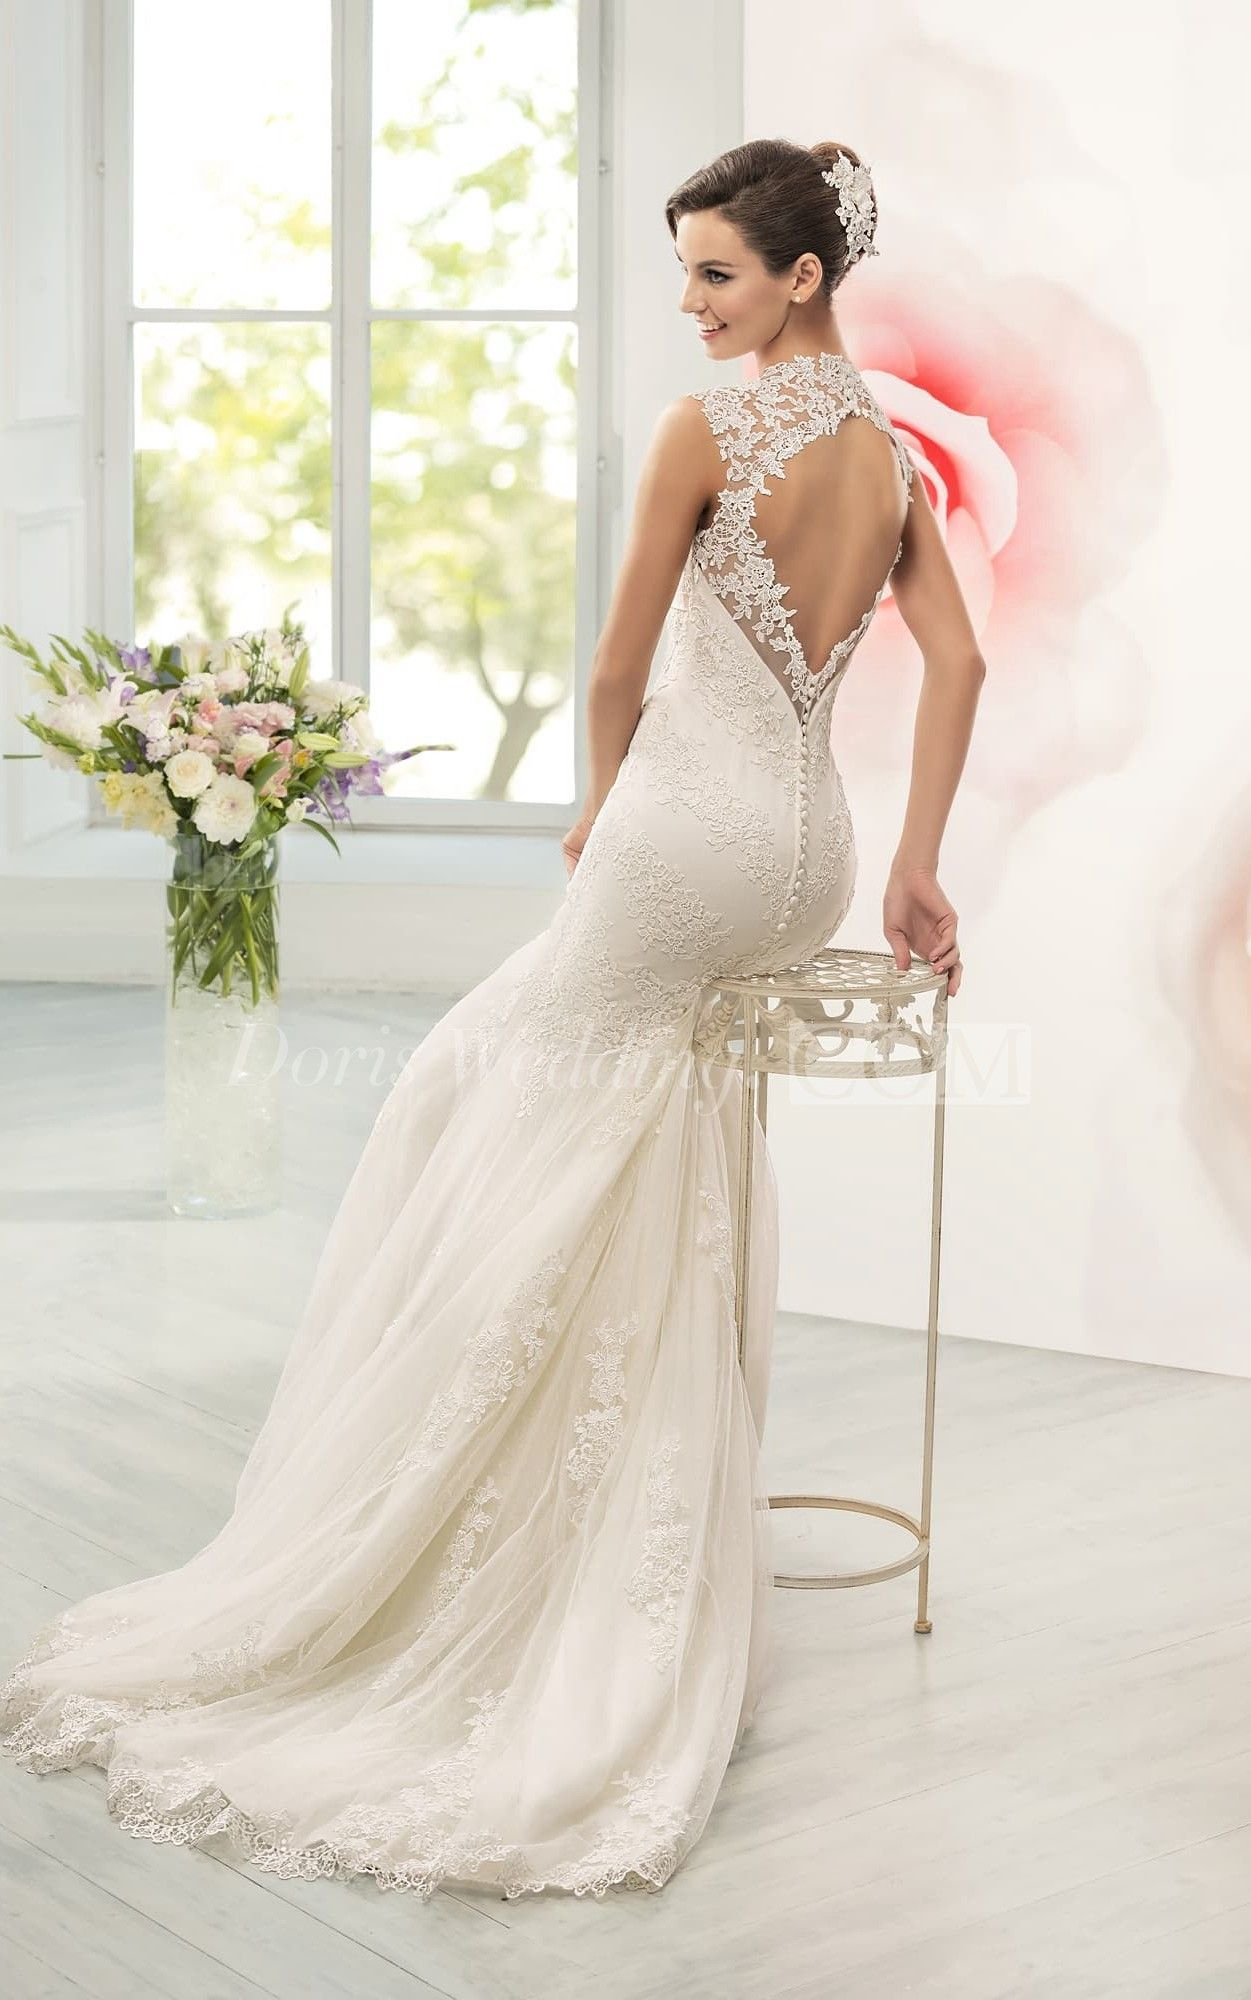 Mermaid Long Queen Anne Sleeveless Keyhole Lace Dress With Appliques And Waist Jewellery Online Wedding Dress Bridal Dresses Wedding Dresses Princess Ballgown [ 2000 x 1251 Pixel ]